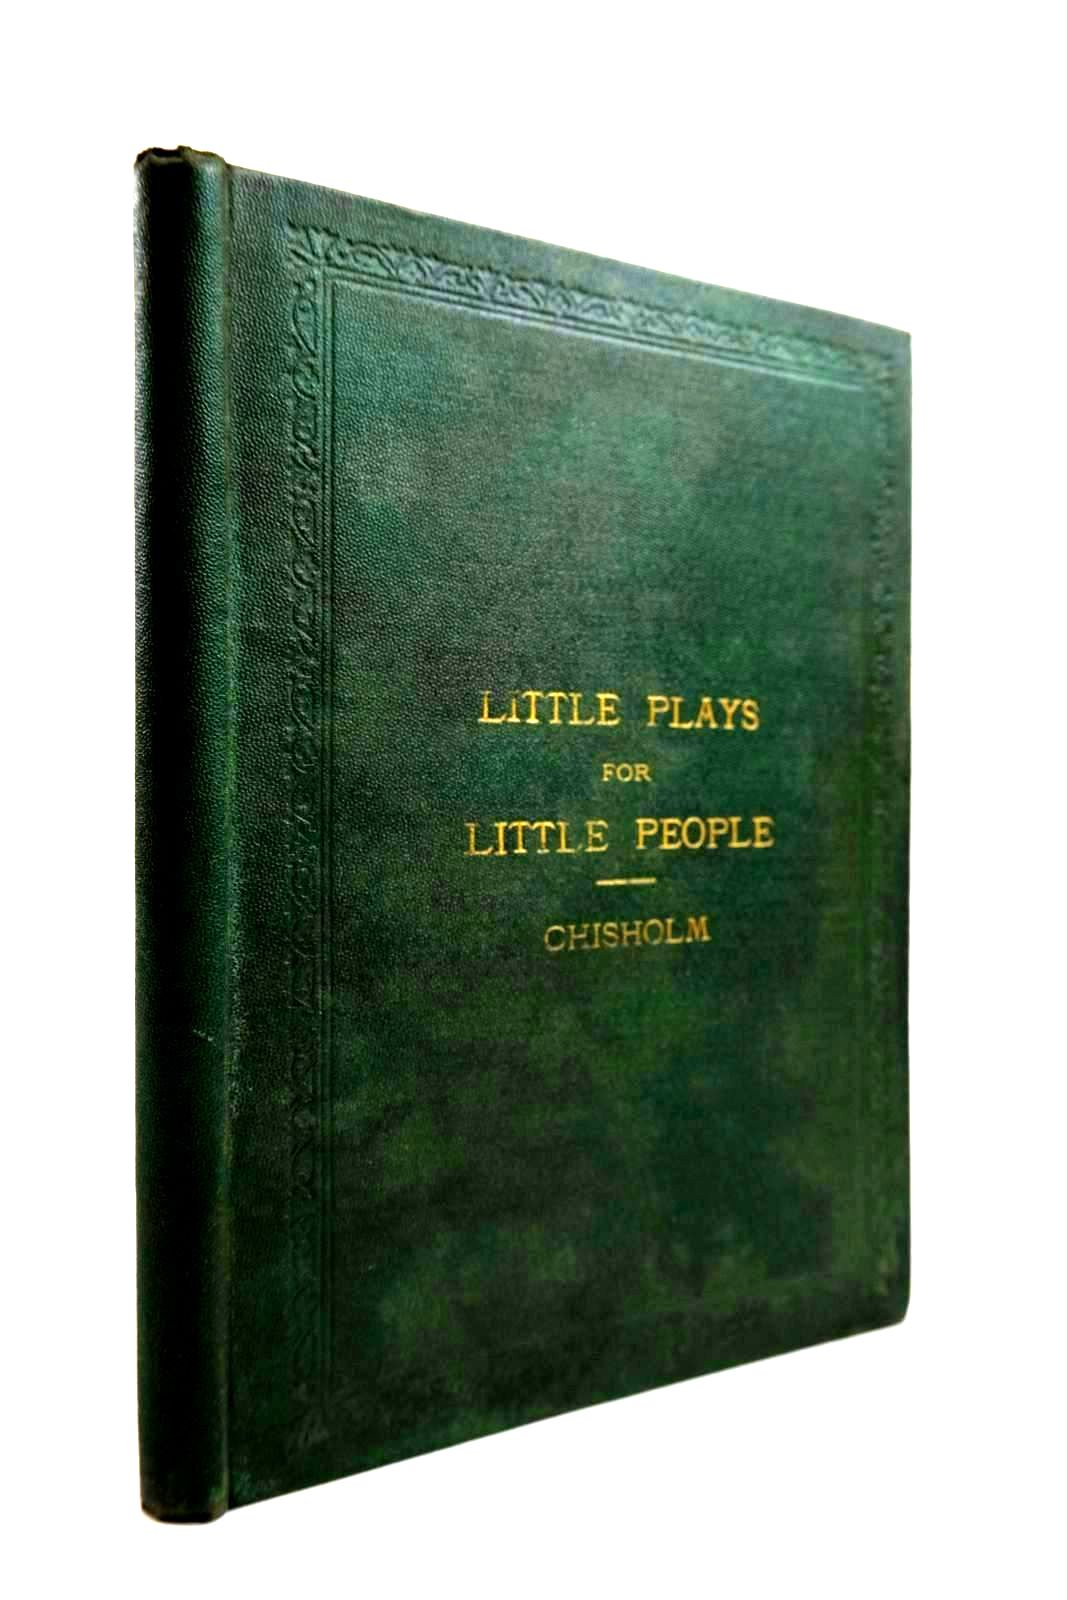 Photo of LITTLE PLAYS FOR LITTLE PEOPLE- Stock Number: 2134263